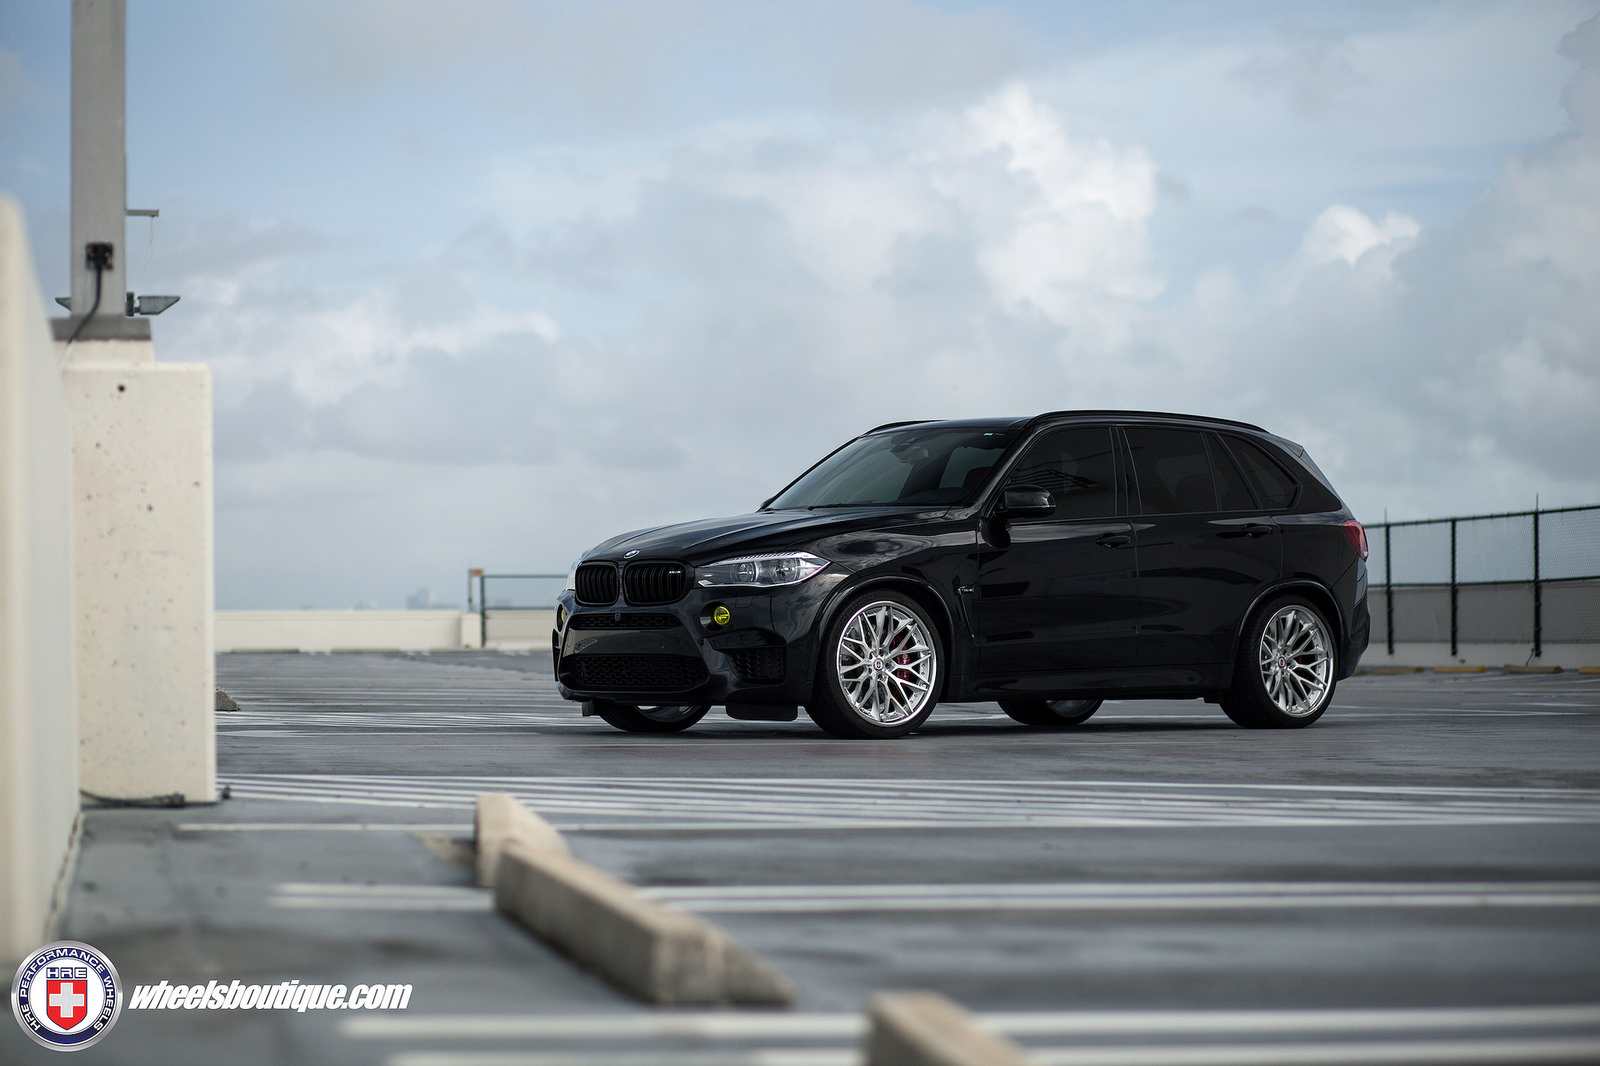 Bmw X5 M Custom Wheels Hre S200 22x10 5 Et Tire Size